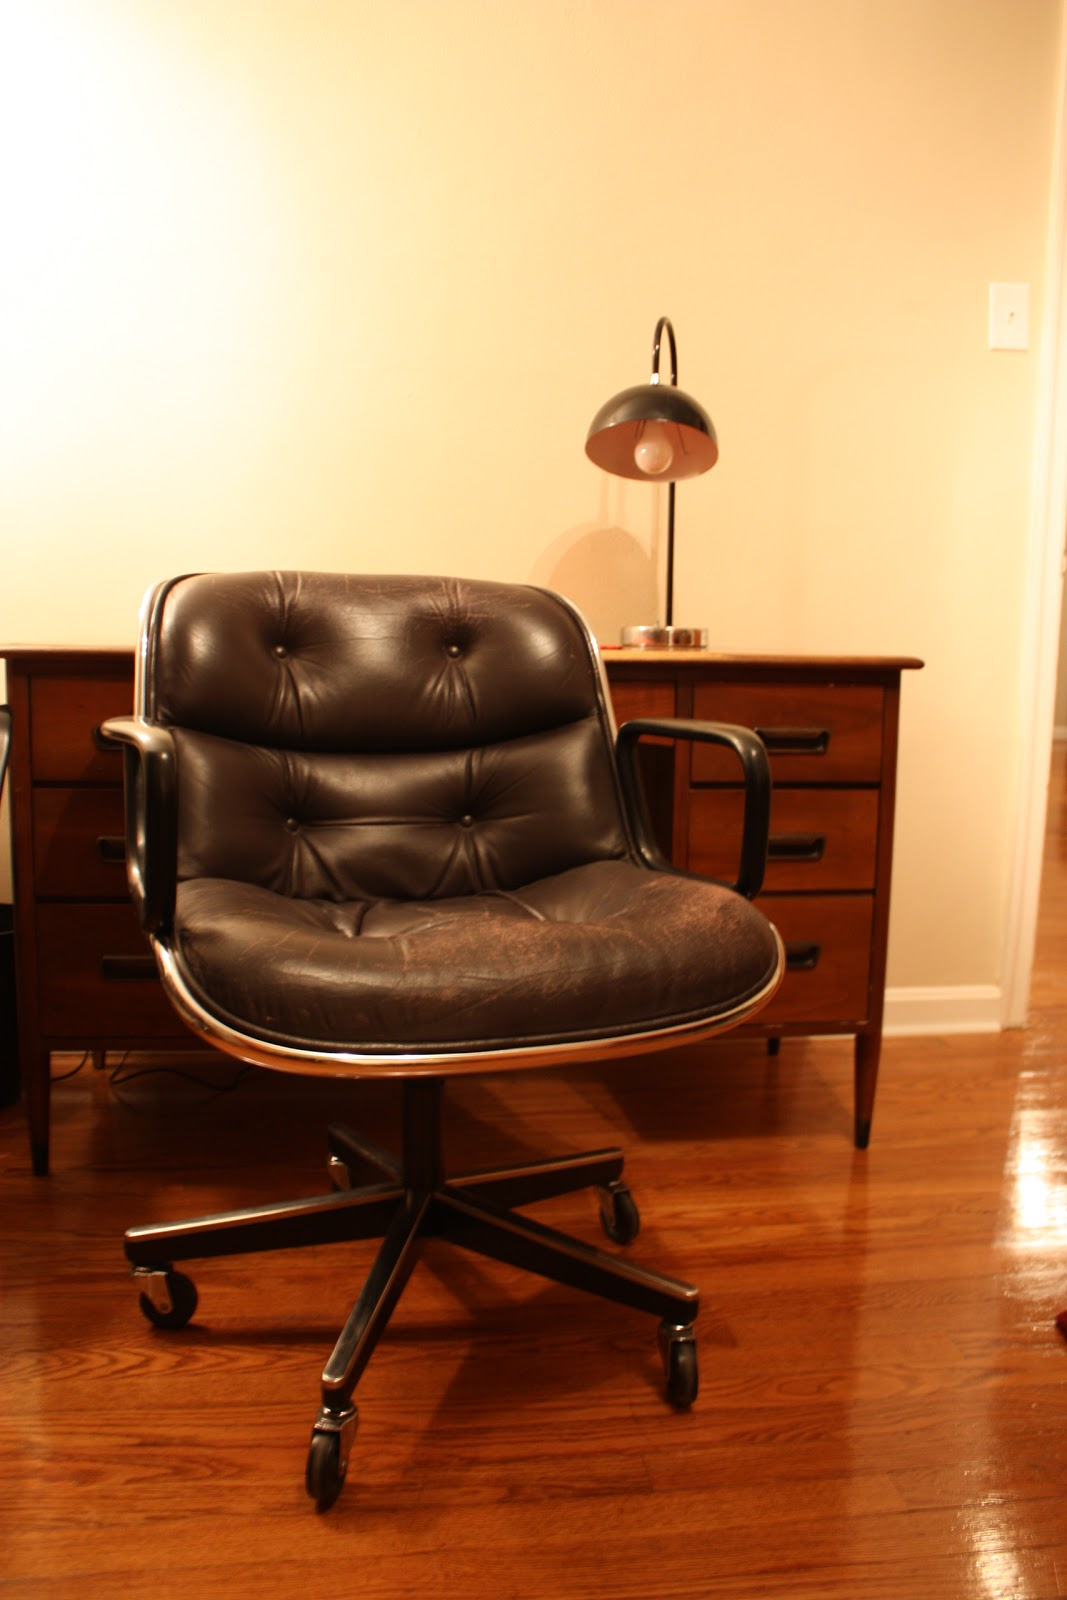 pollock executive chair replica pier one chairs dining mid century midwest a plethora of